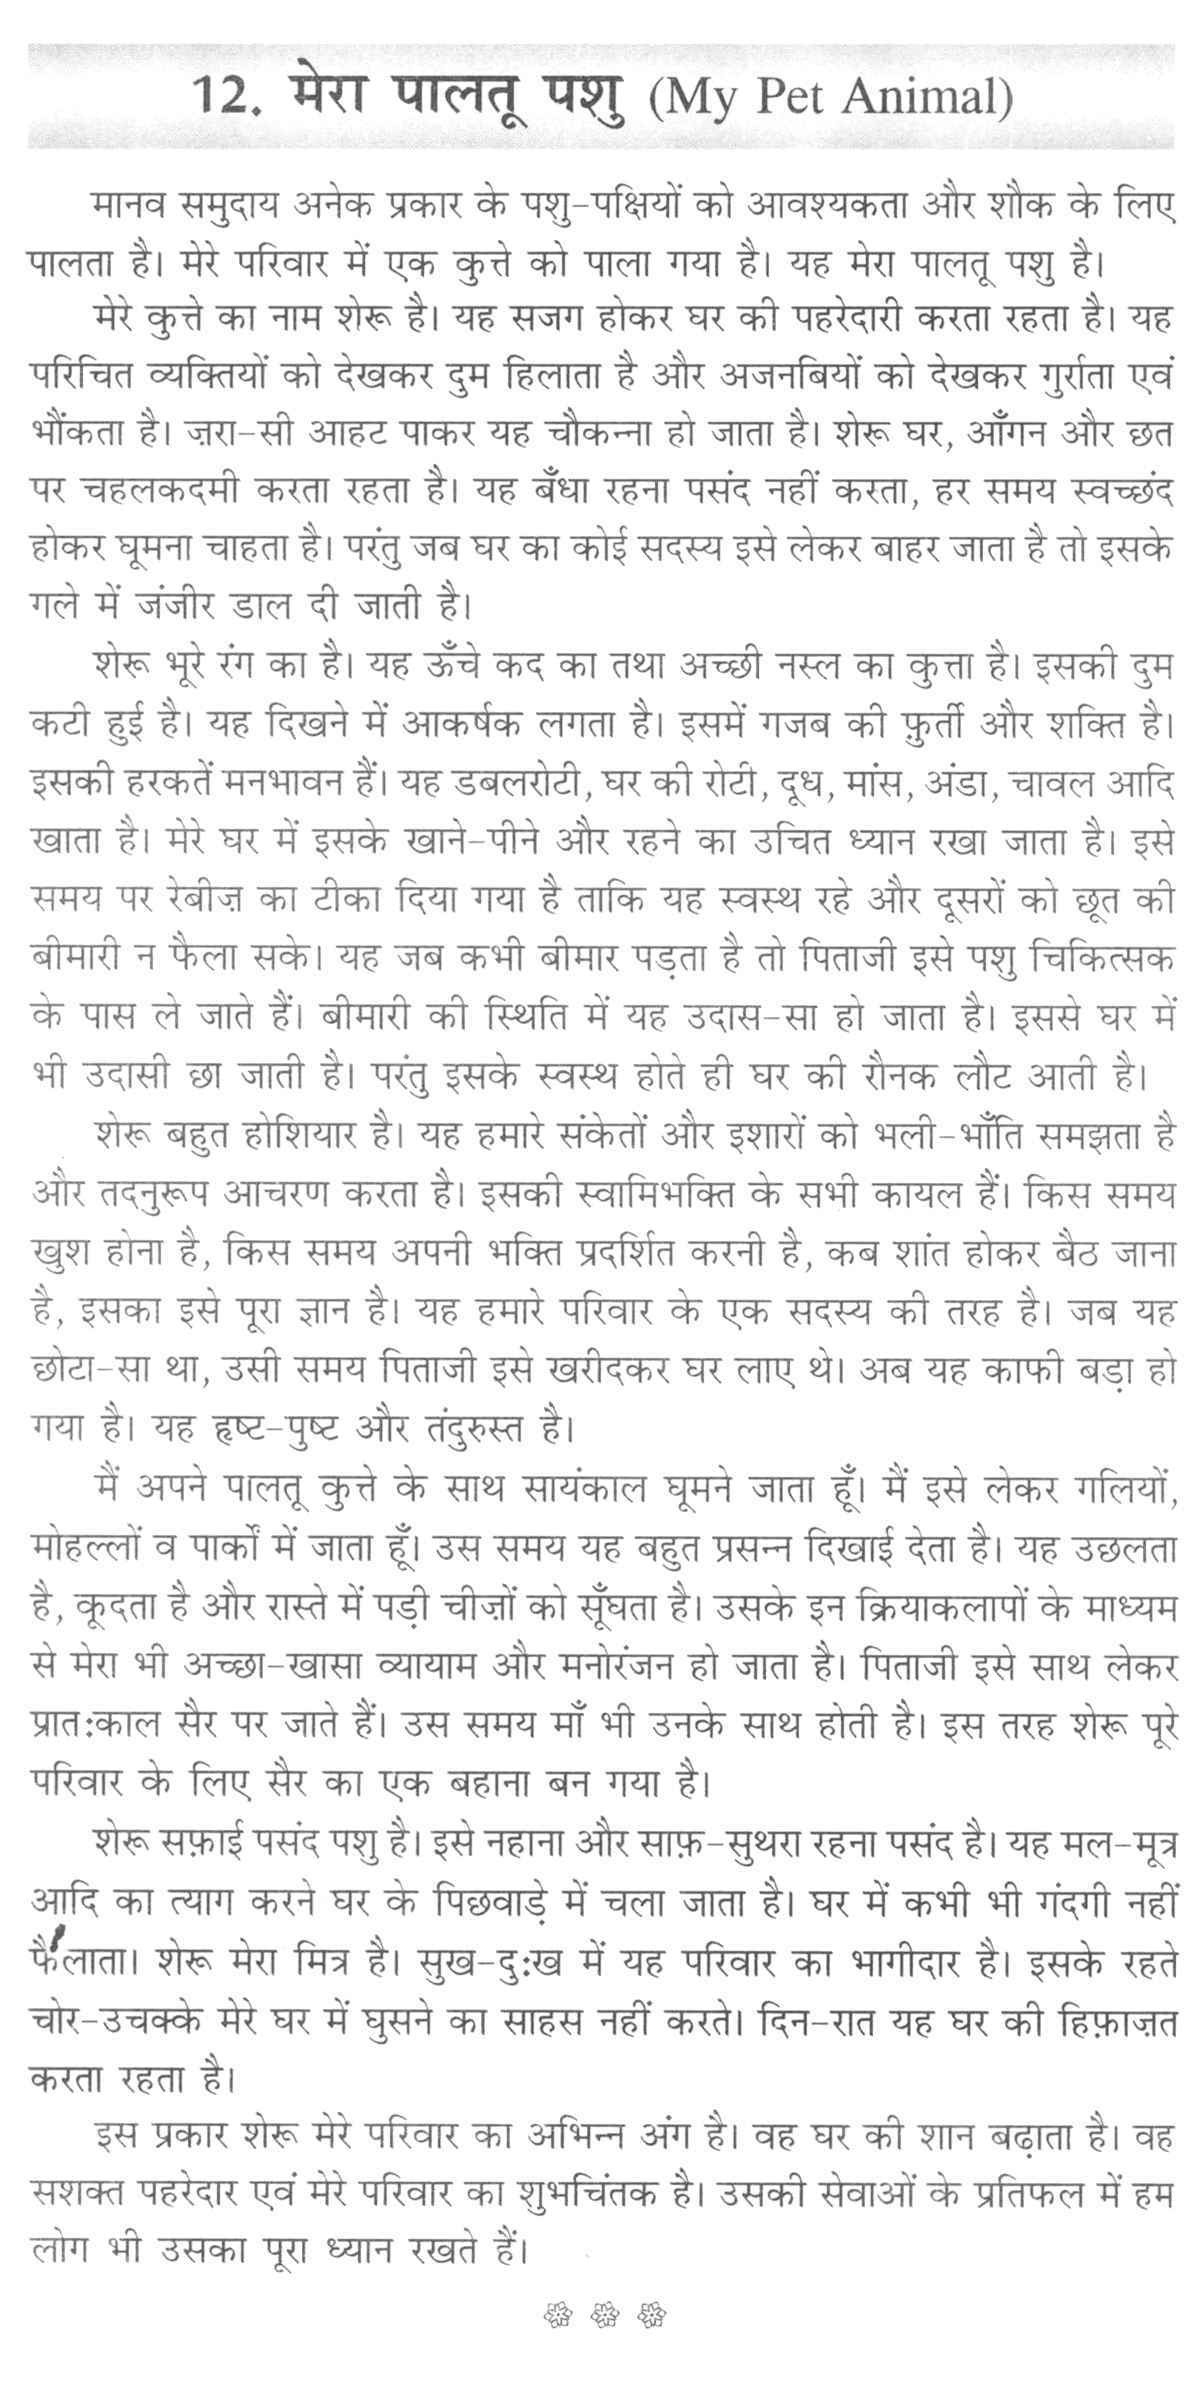 006 Essay On Love For Animals In Hindi Example Our Pet Writefiction581webfc2com Animal L Fascinating Towards And Birds Full